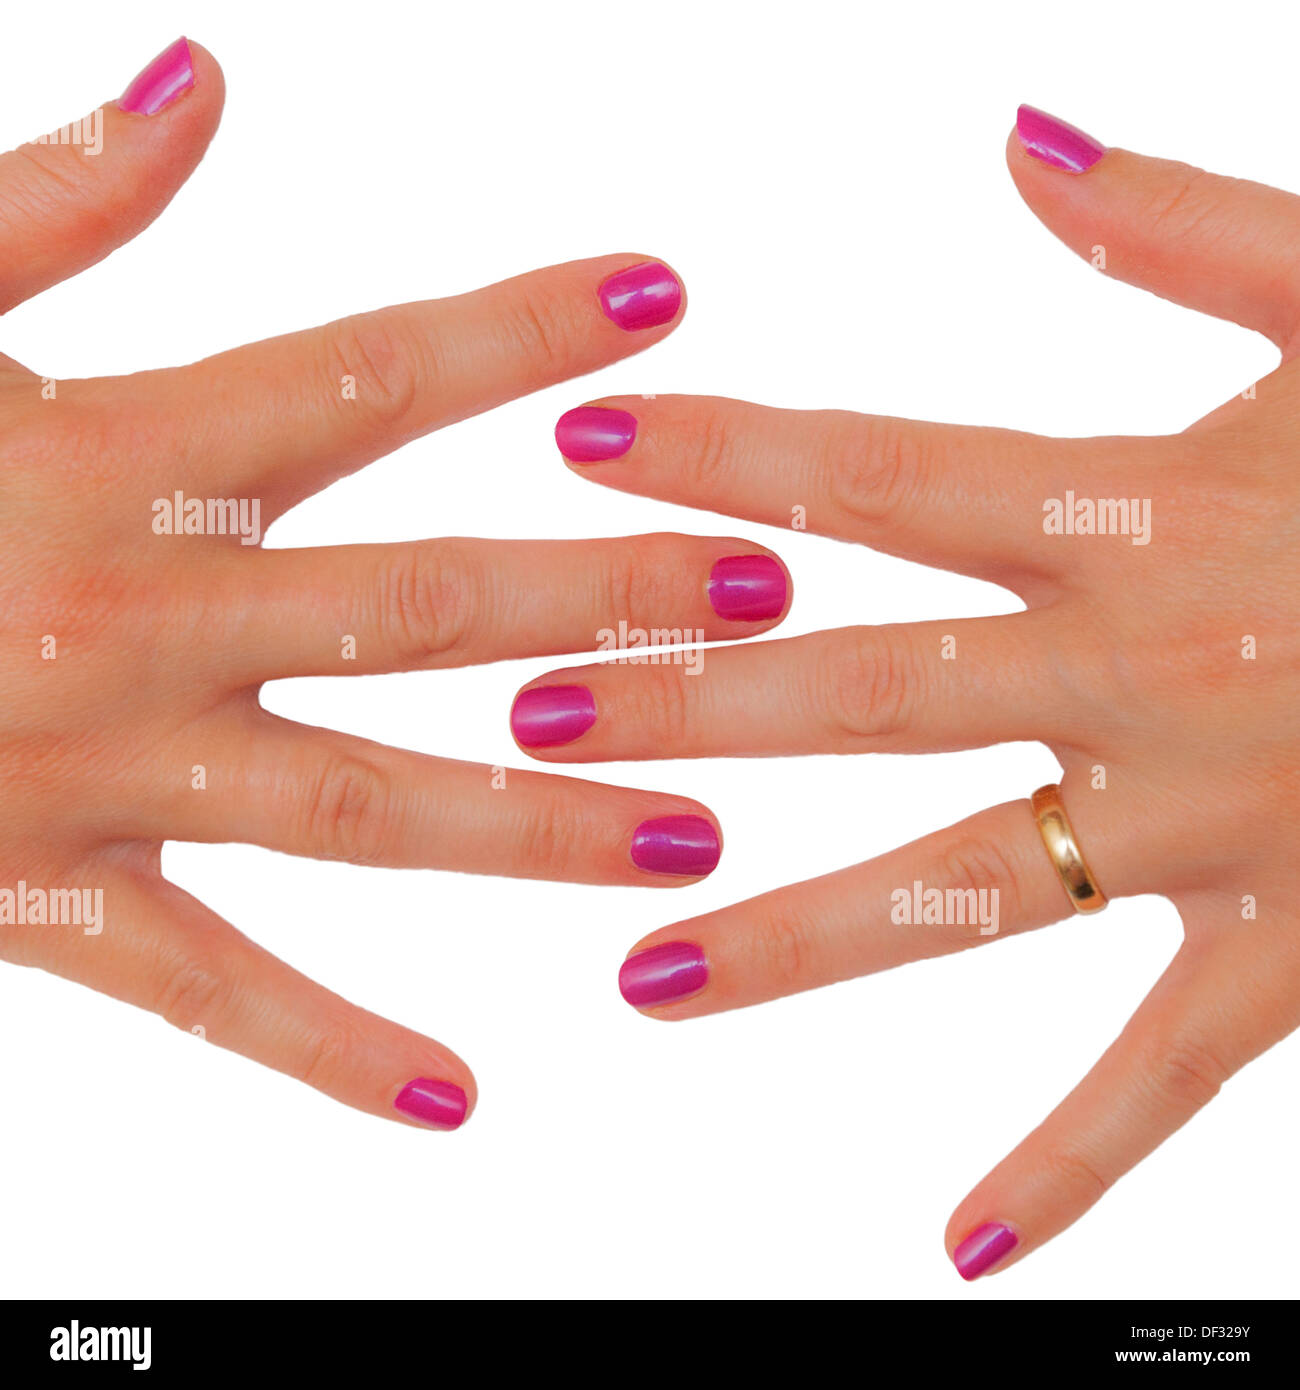 A womans hands freshly manicured with pink painted nails - Stock Image